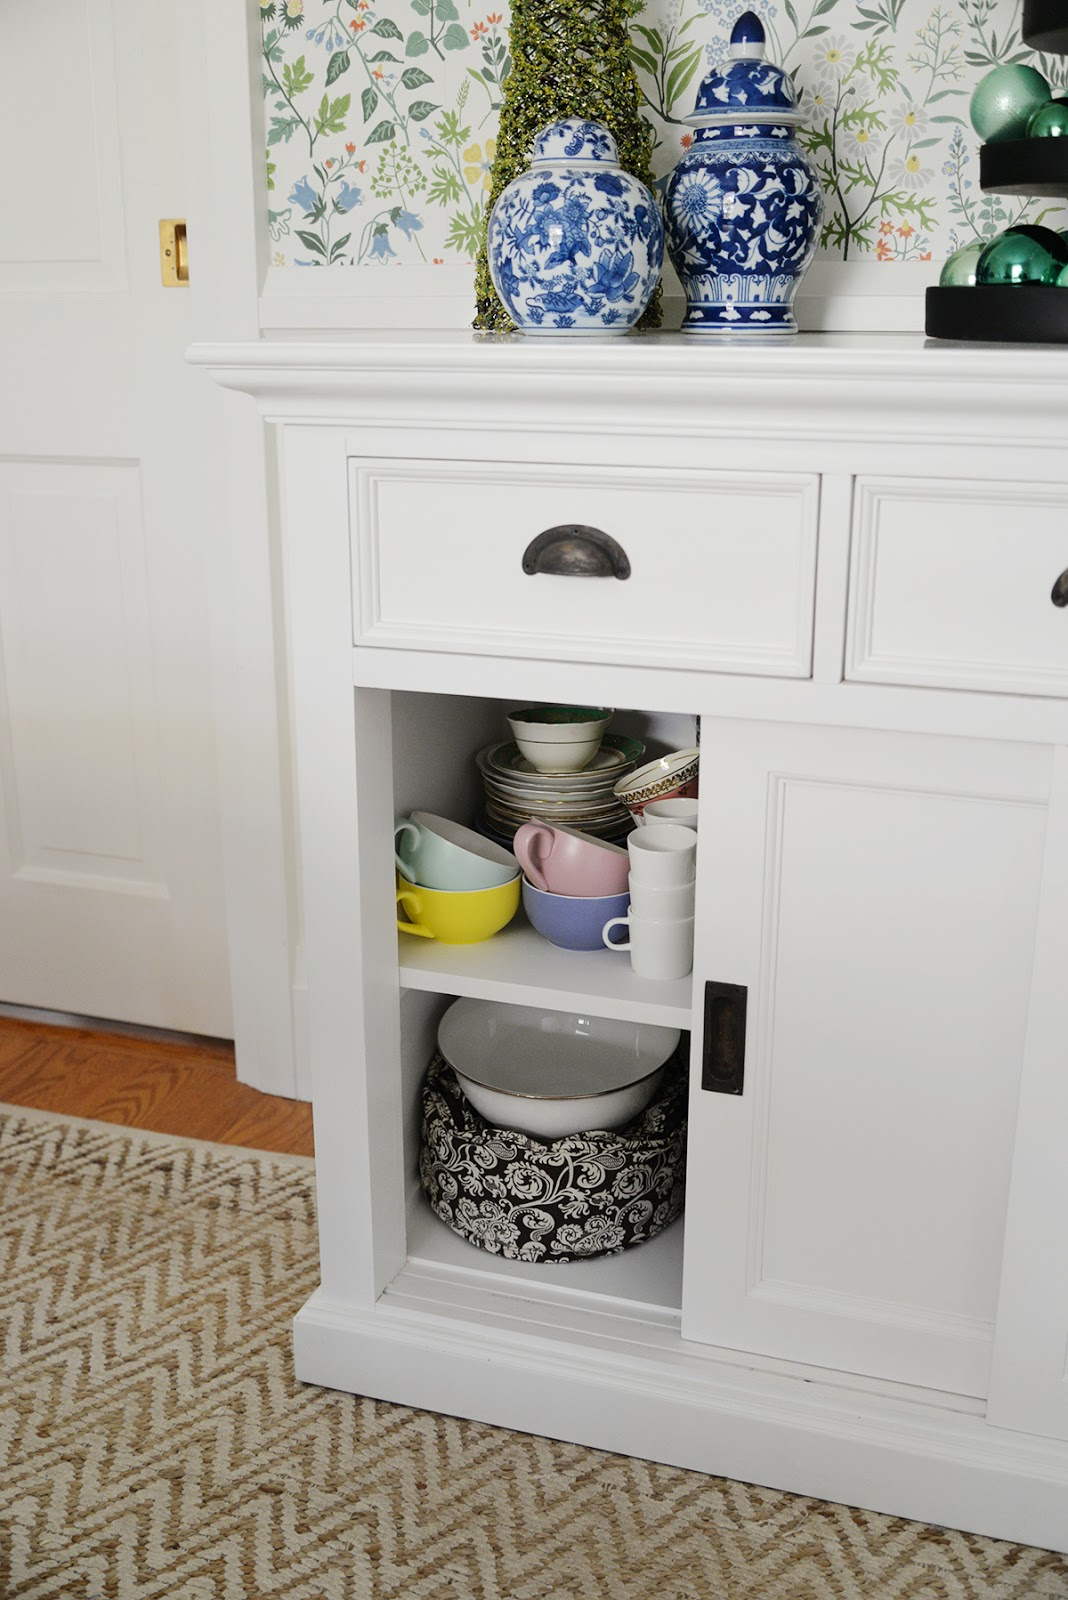 dining room cupboard storage | A Dining Room Storage Cabinet - Rambling Renovators